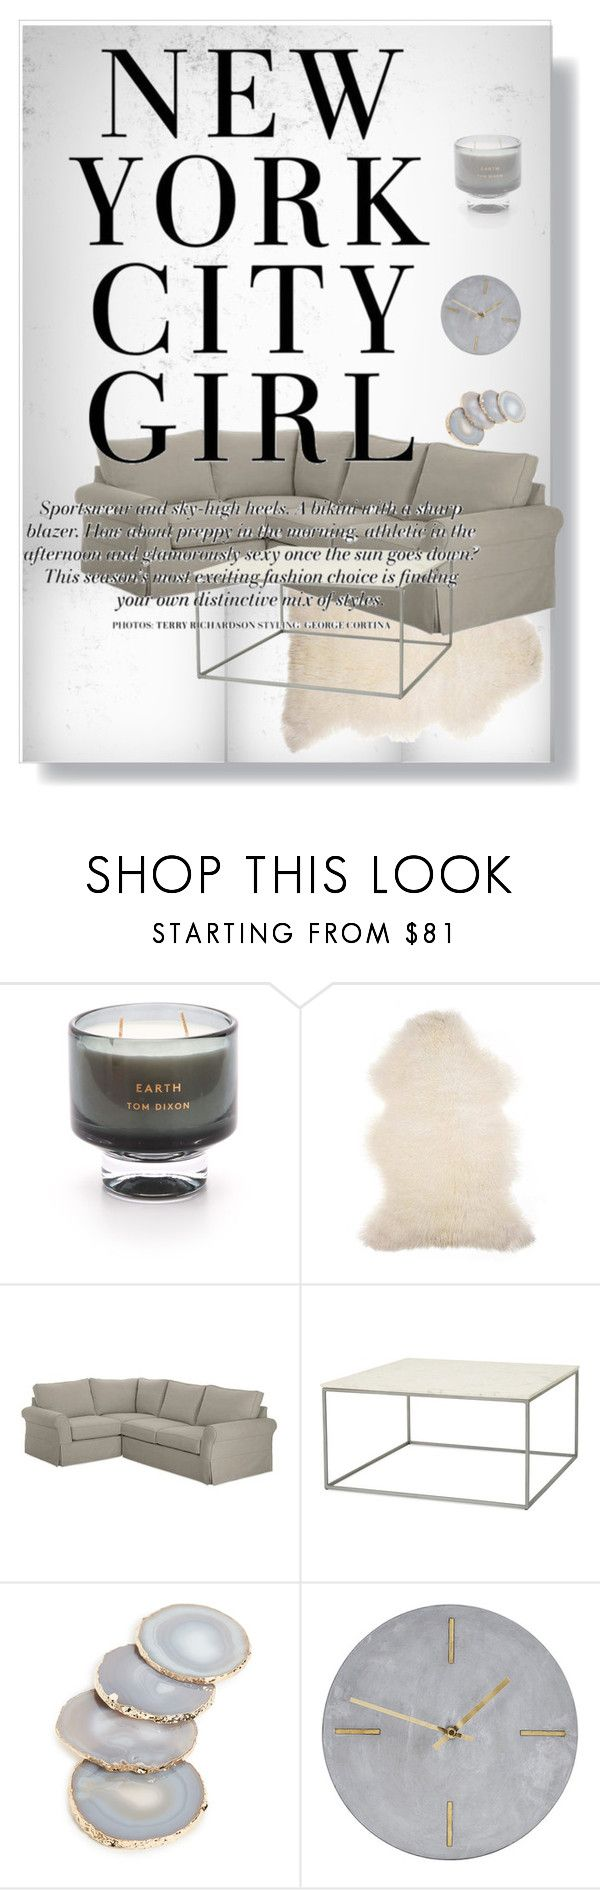 """""""Loft Style"""" by cassideepaige on Polyvore featuring interior, interiors, interior design, home, home decor, interior decorating, Tom Dixon, Barneys New York, Pottery Barn and House Doctor"""